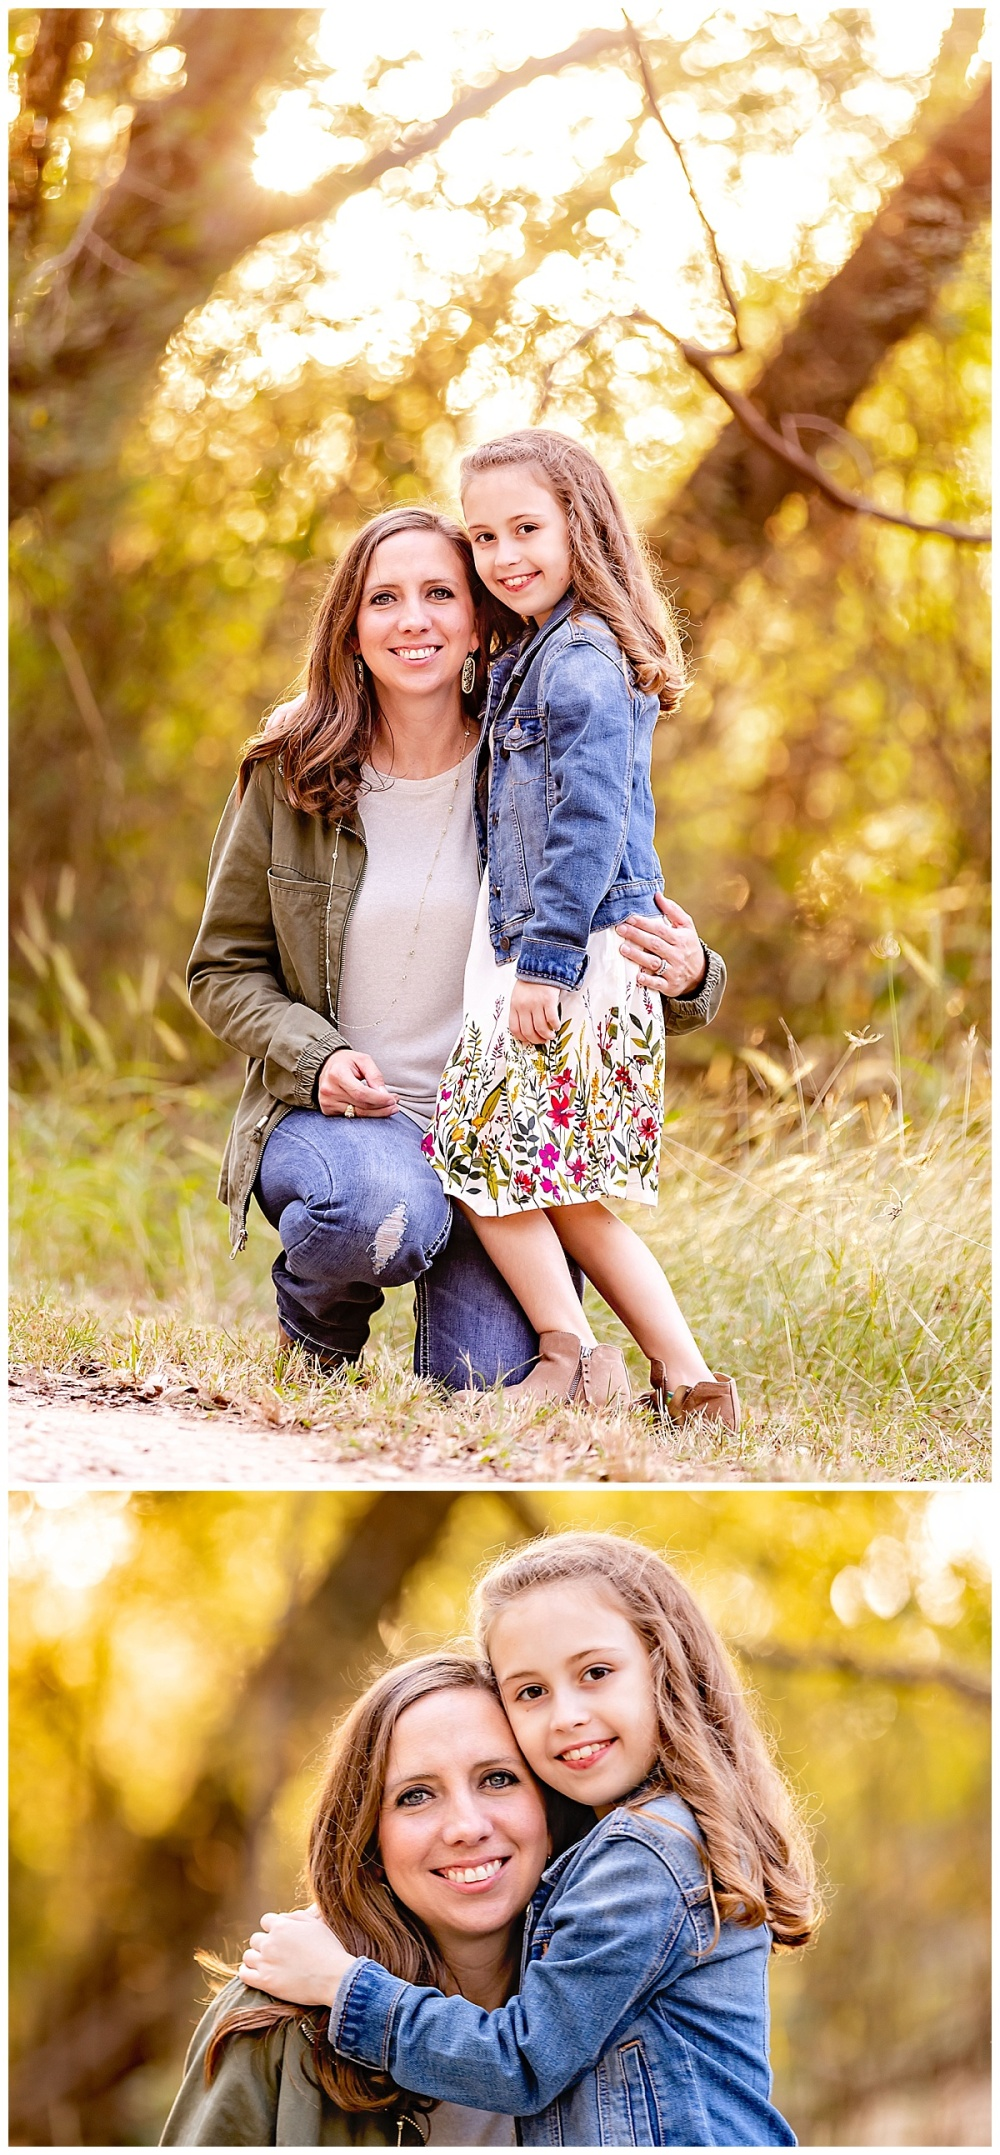 Family-Photographer-LaVernia-Texas-Carly-Barton-Photography-Latham_0006.jpg